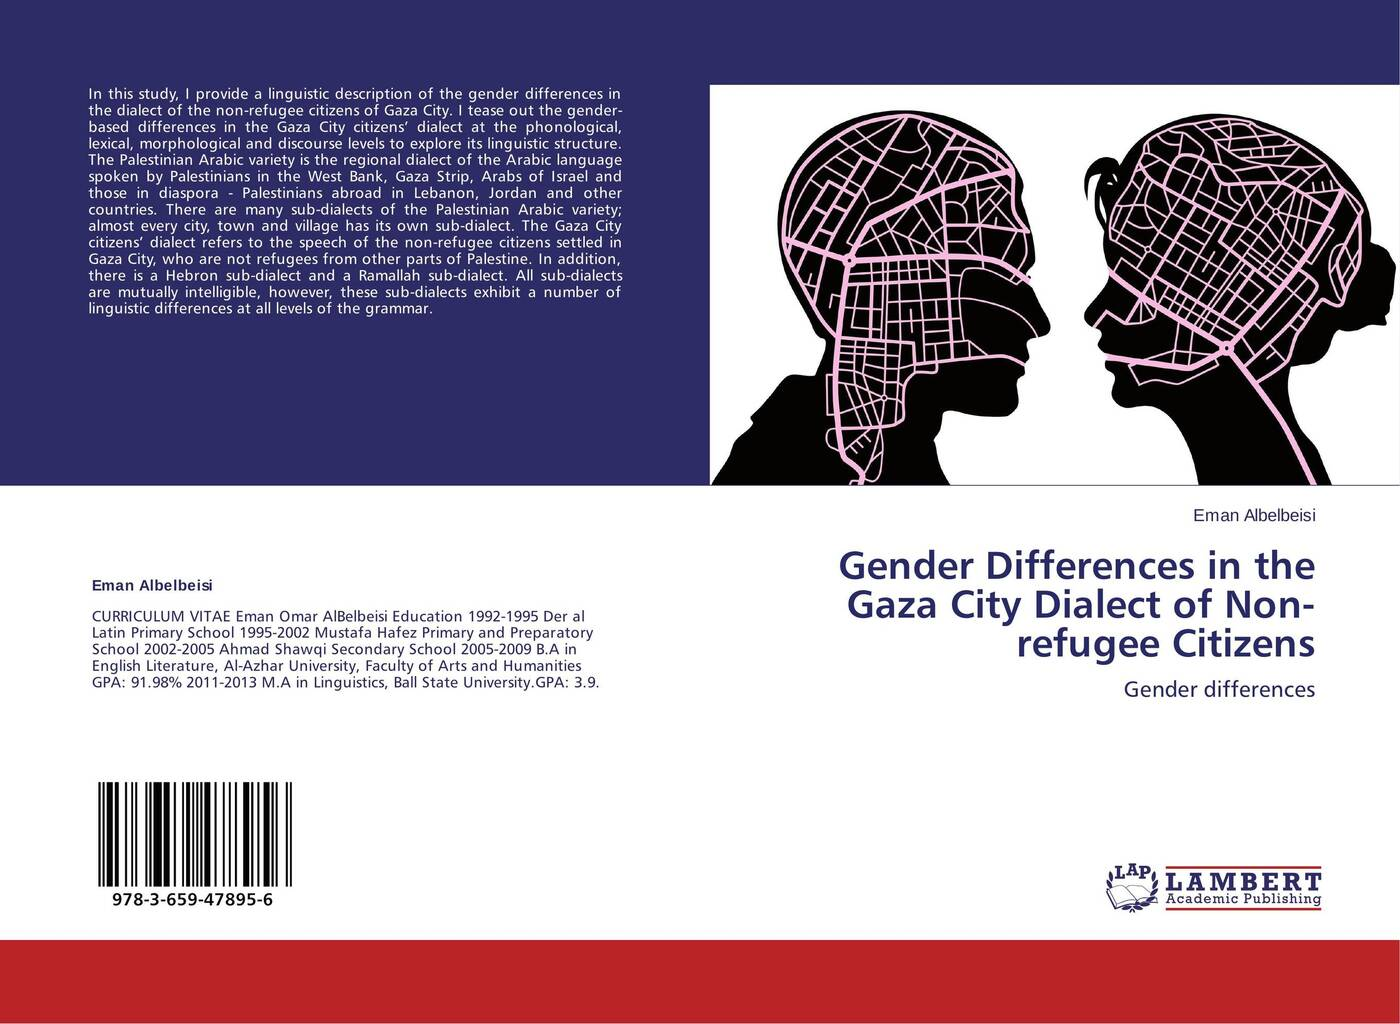 Eman Albelbeisi Gender Differences in the Gaza City Dialect of Non-refugee Citizens недорго, оригинальная цена